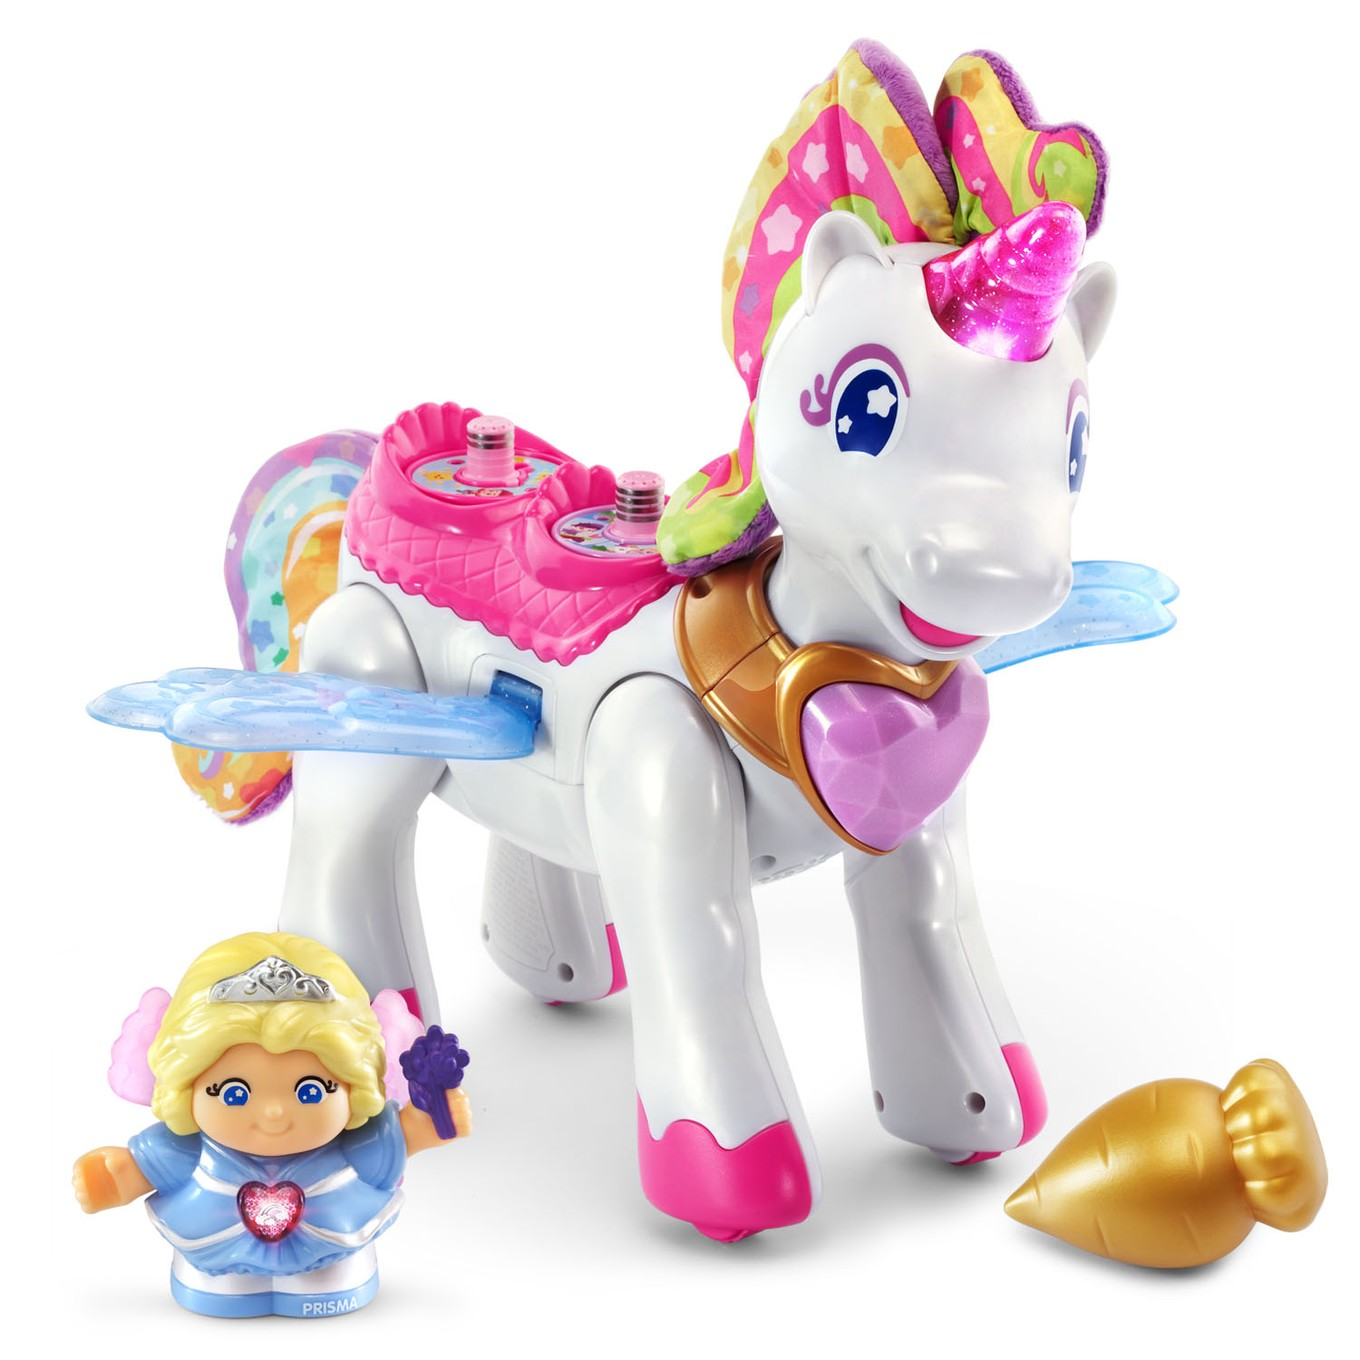 Unicorn Toys For Girls : Go smart friends │ twinkle the magical unicorn vtech